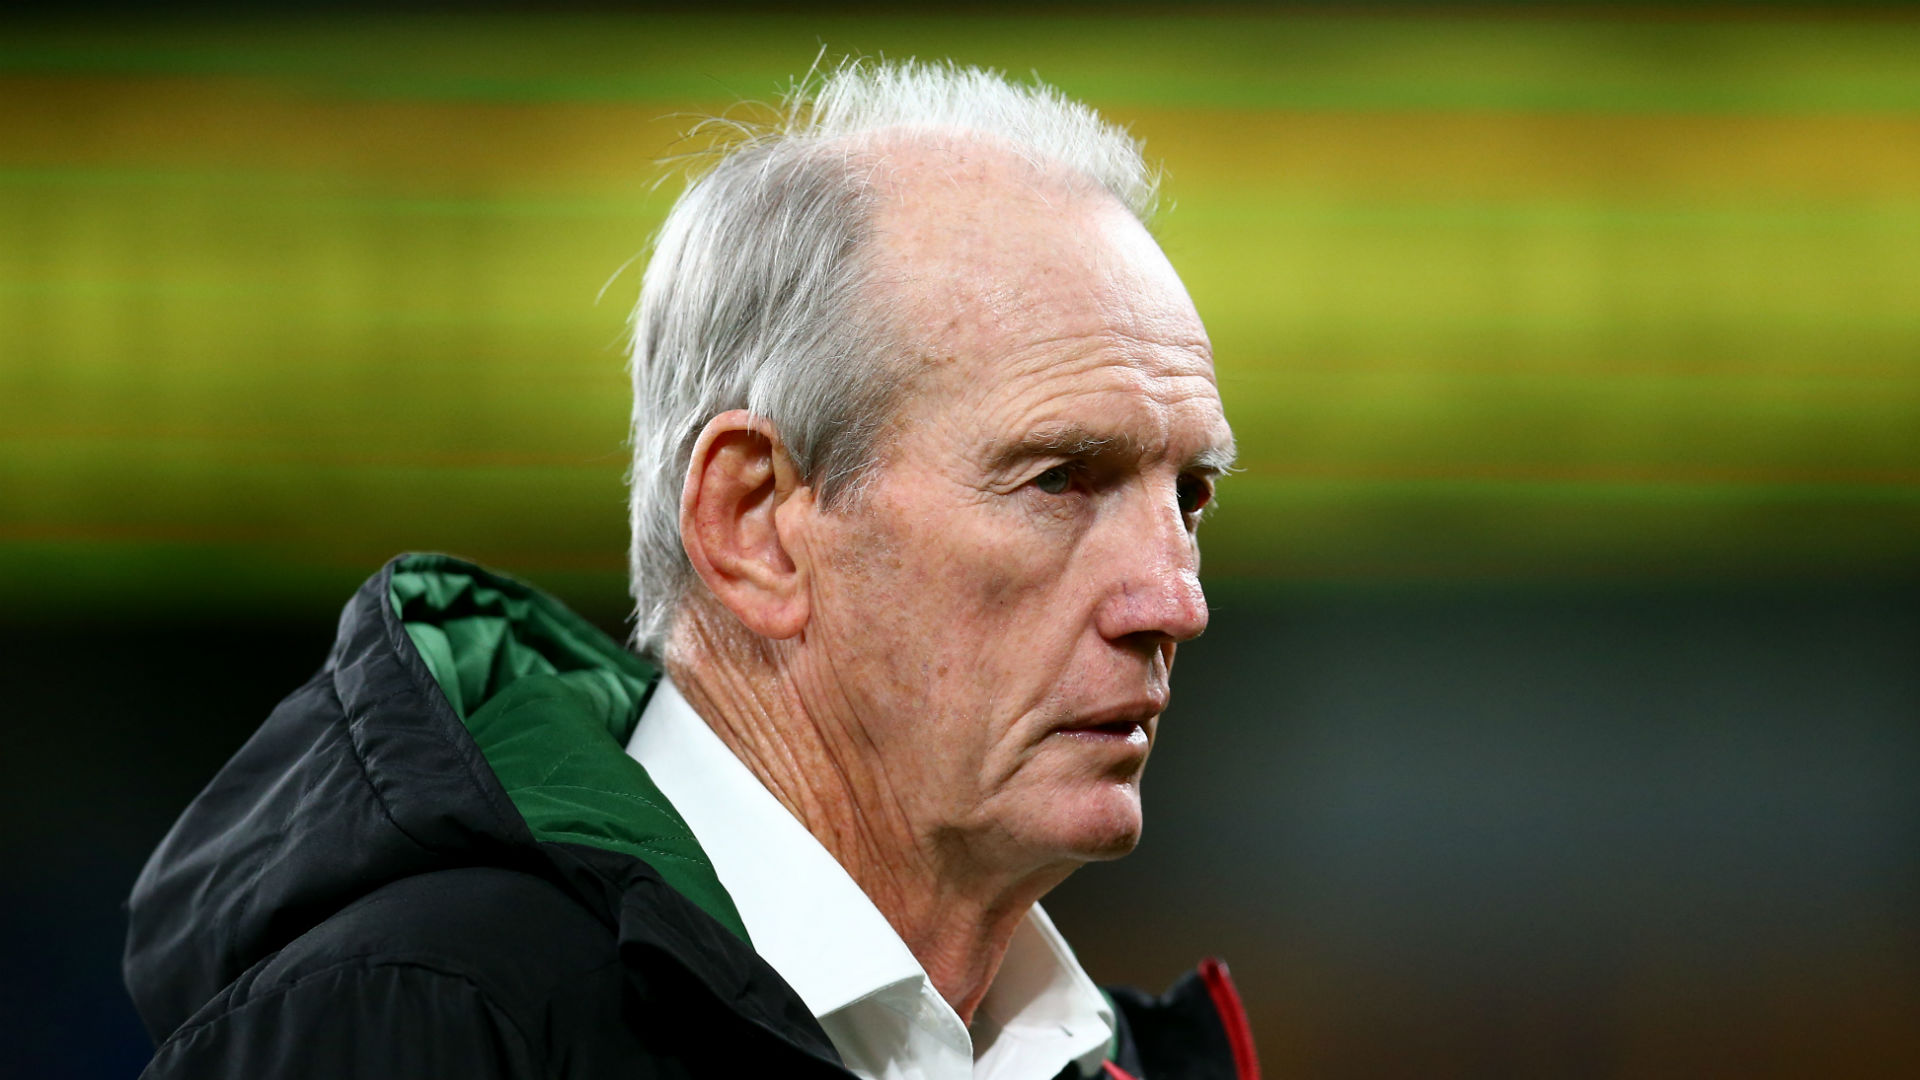 Having steered the Maroons to a 2-1 series victory in 2020, Wayne Bennett will not be continuing in charge this year.